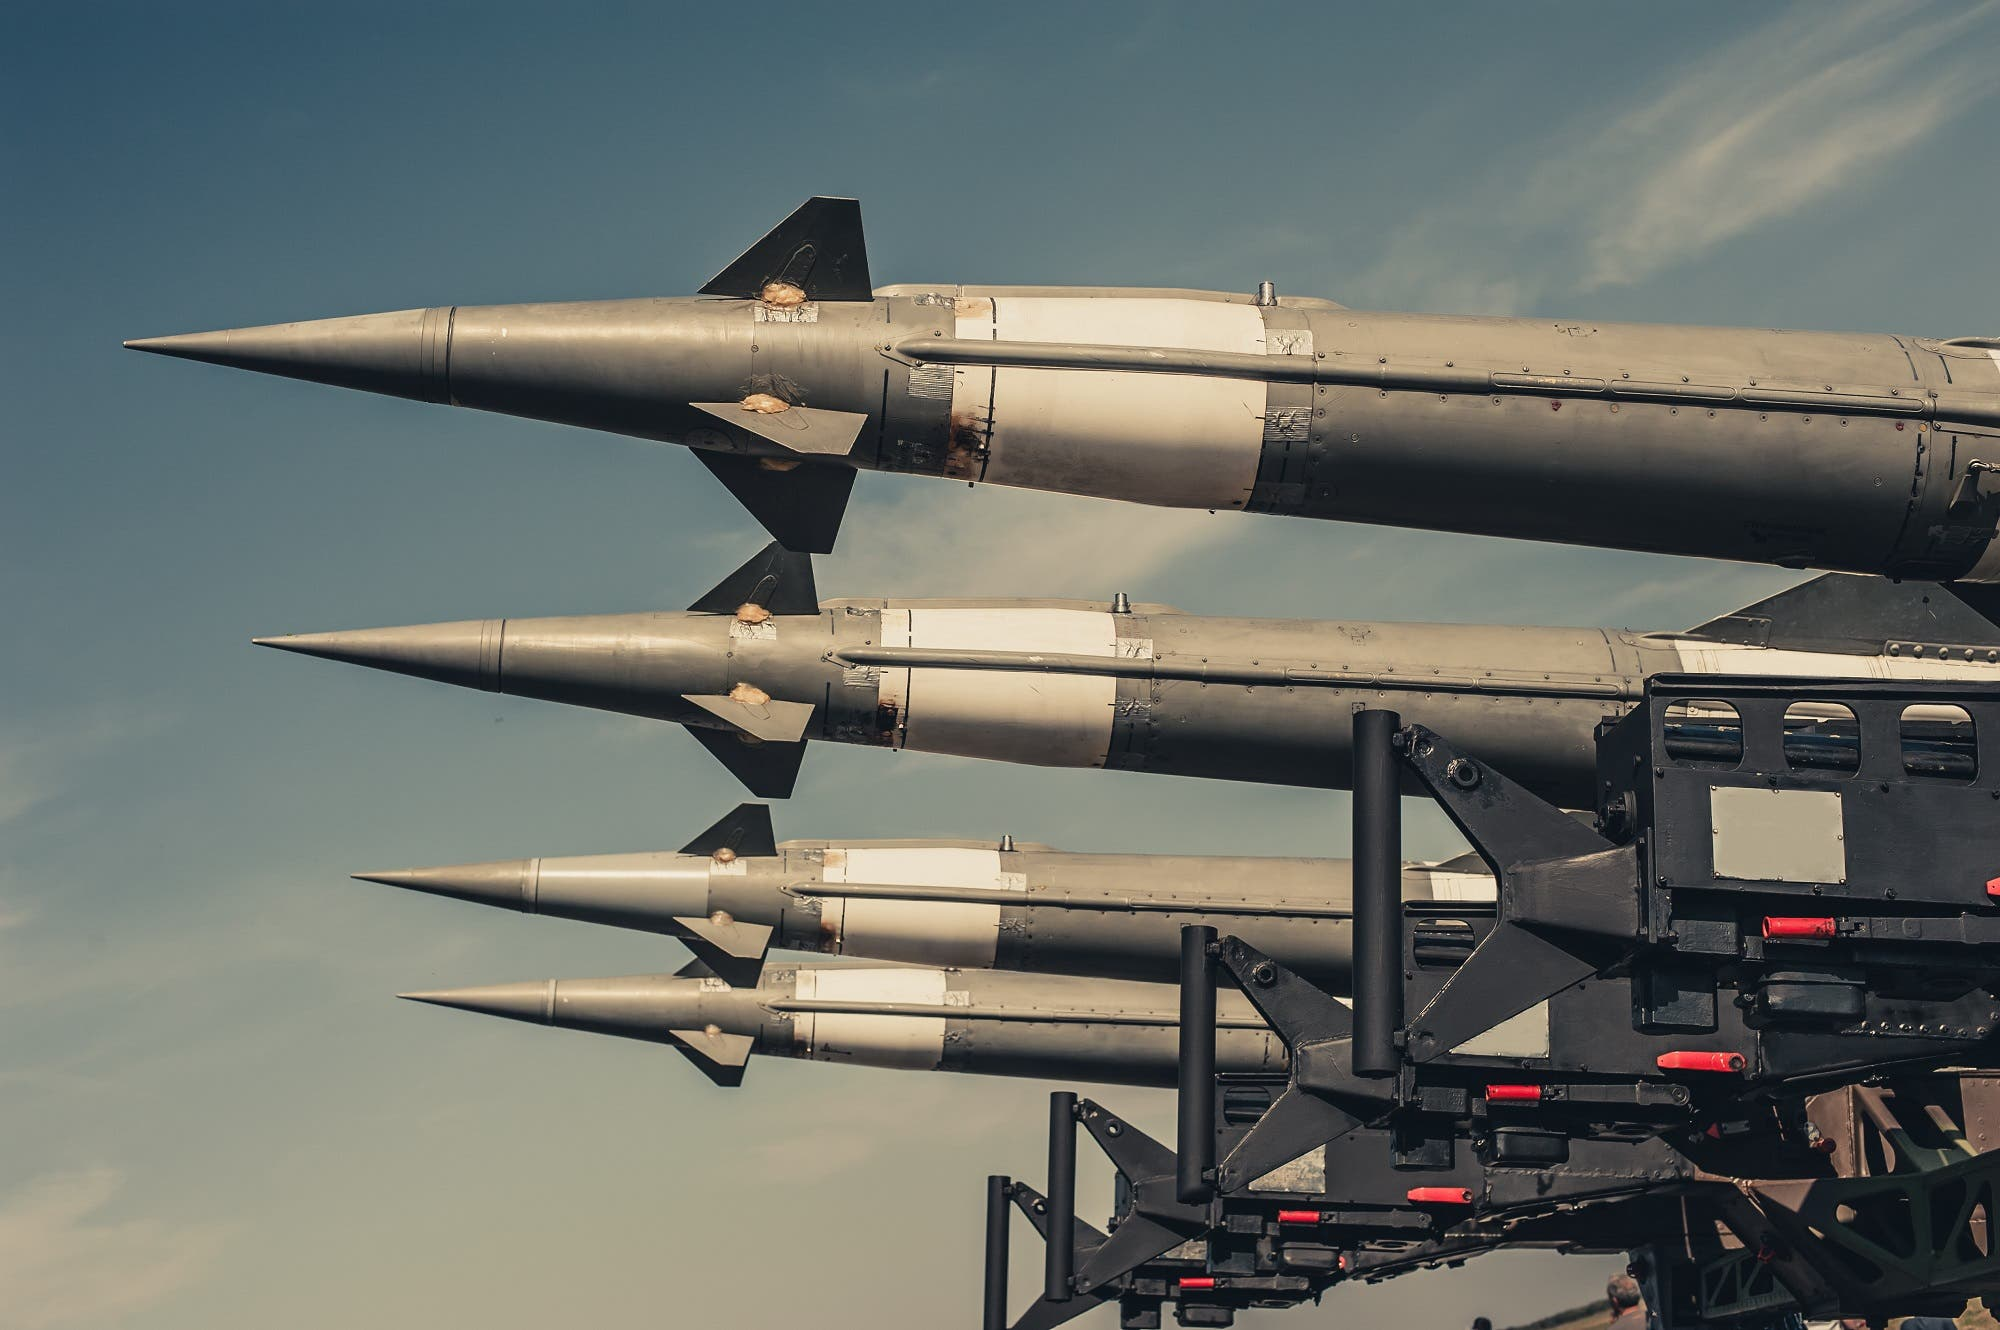 In July, the United States imposed sanctions on Iran over its missile program. (Shutterstock)